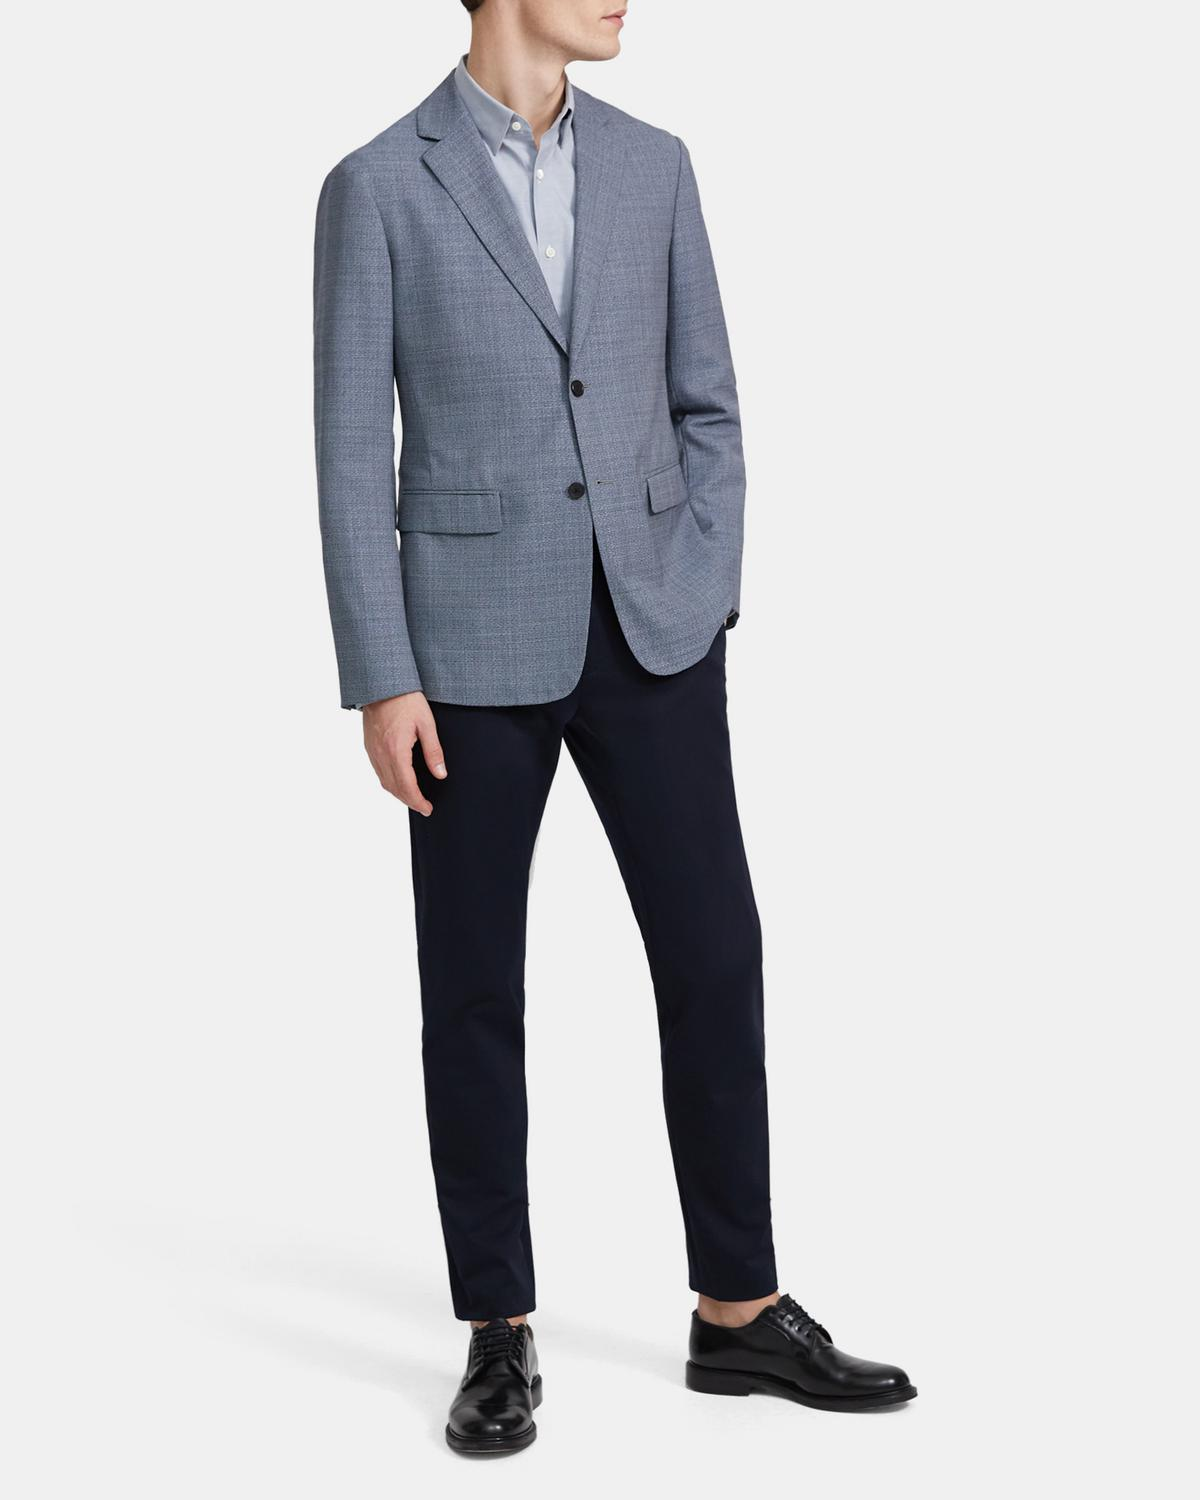 Clinton Blazer in Textured Wool